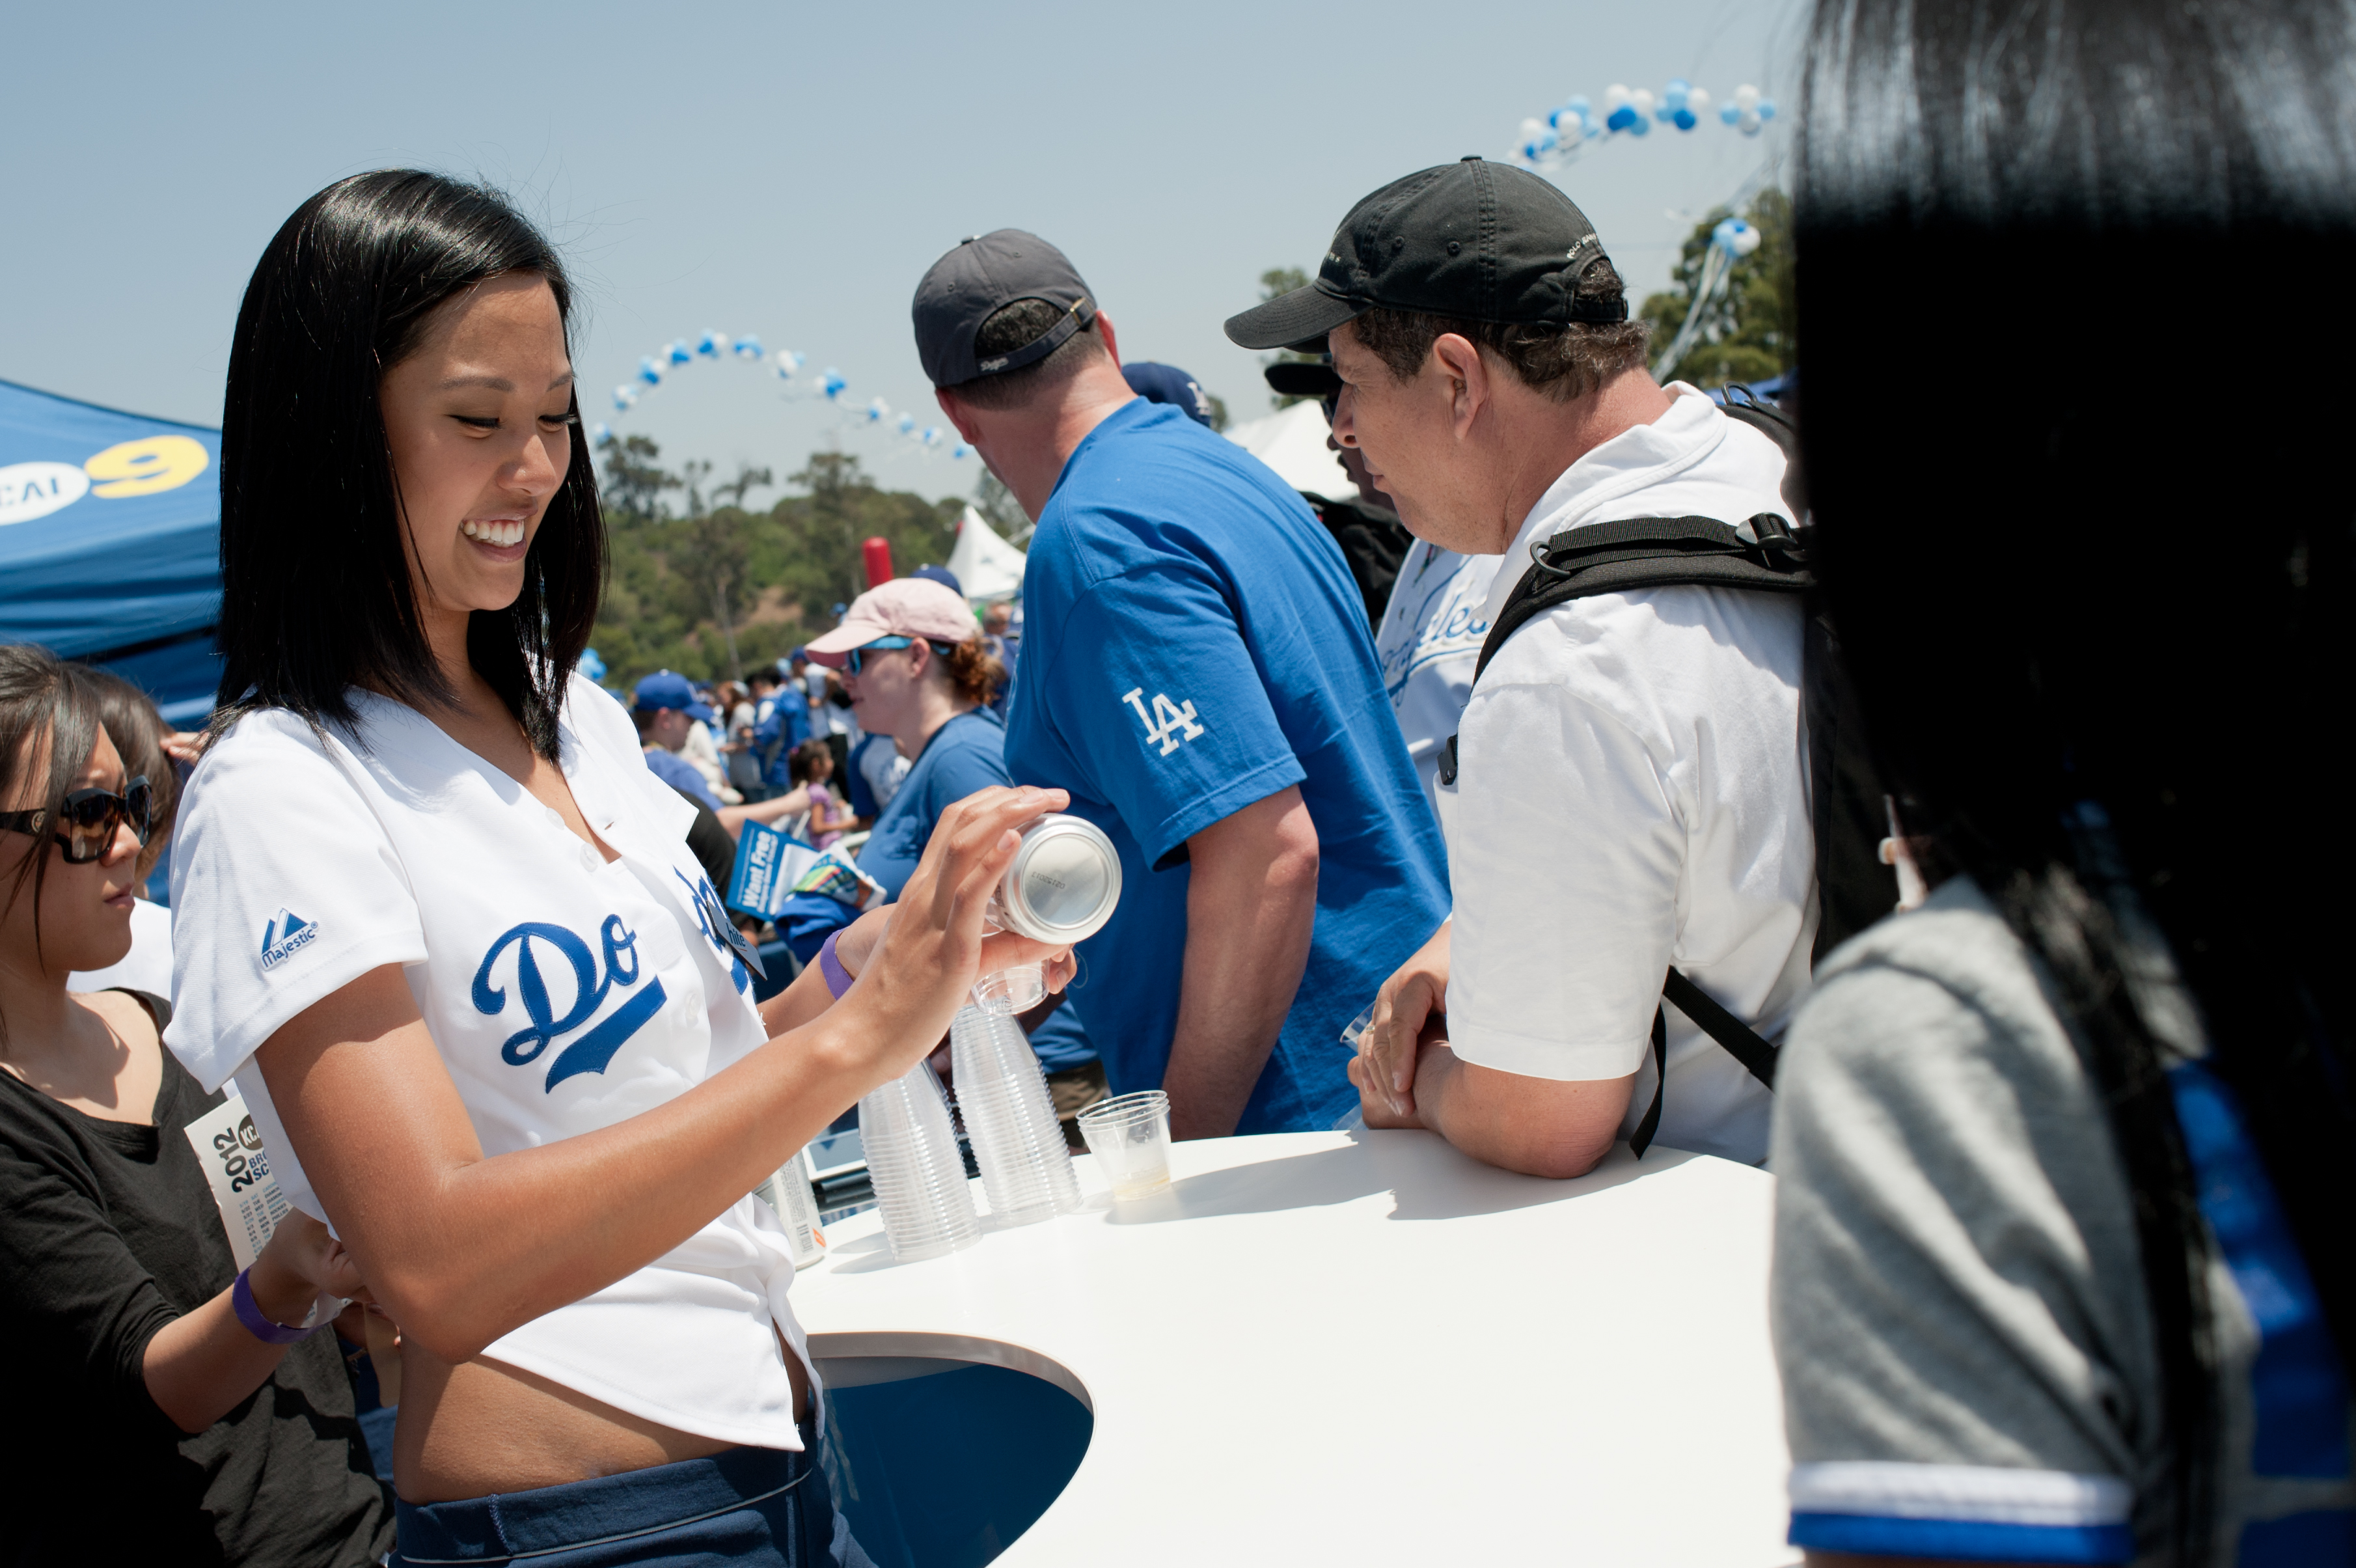 At the Dodger FanFest, May 19th!